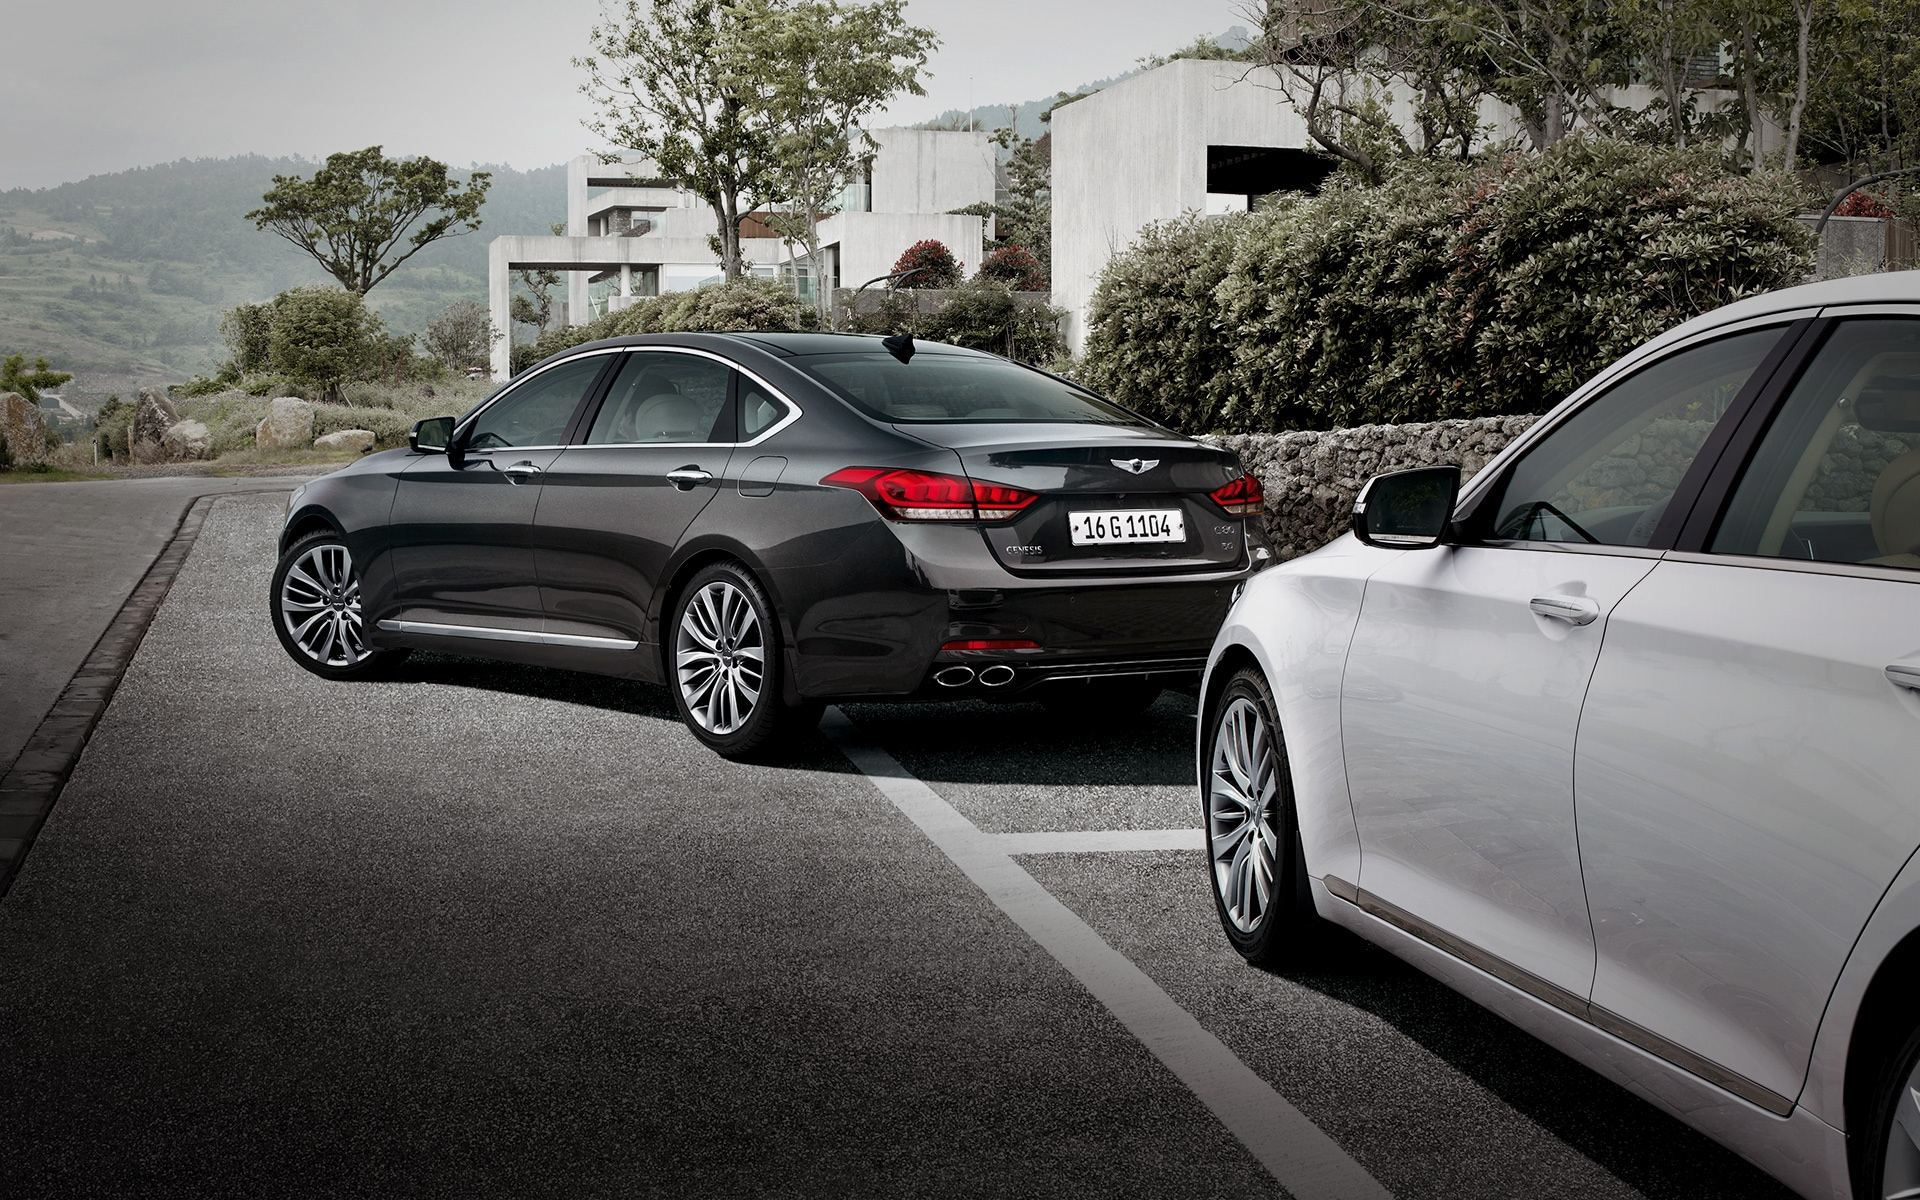 GENESIS G80 Innovation Features - Parking Assist System (PAS)